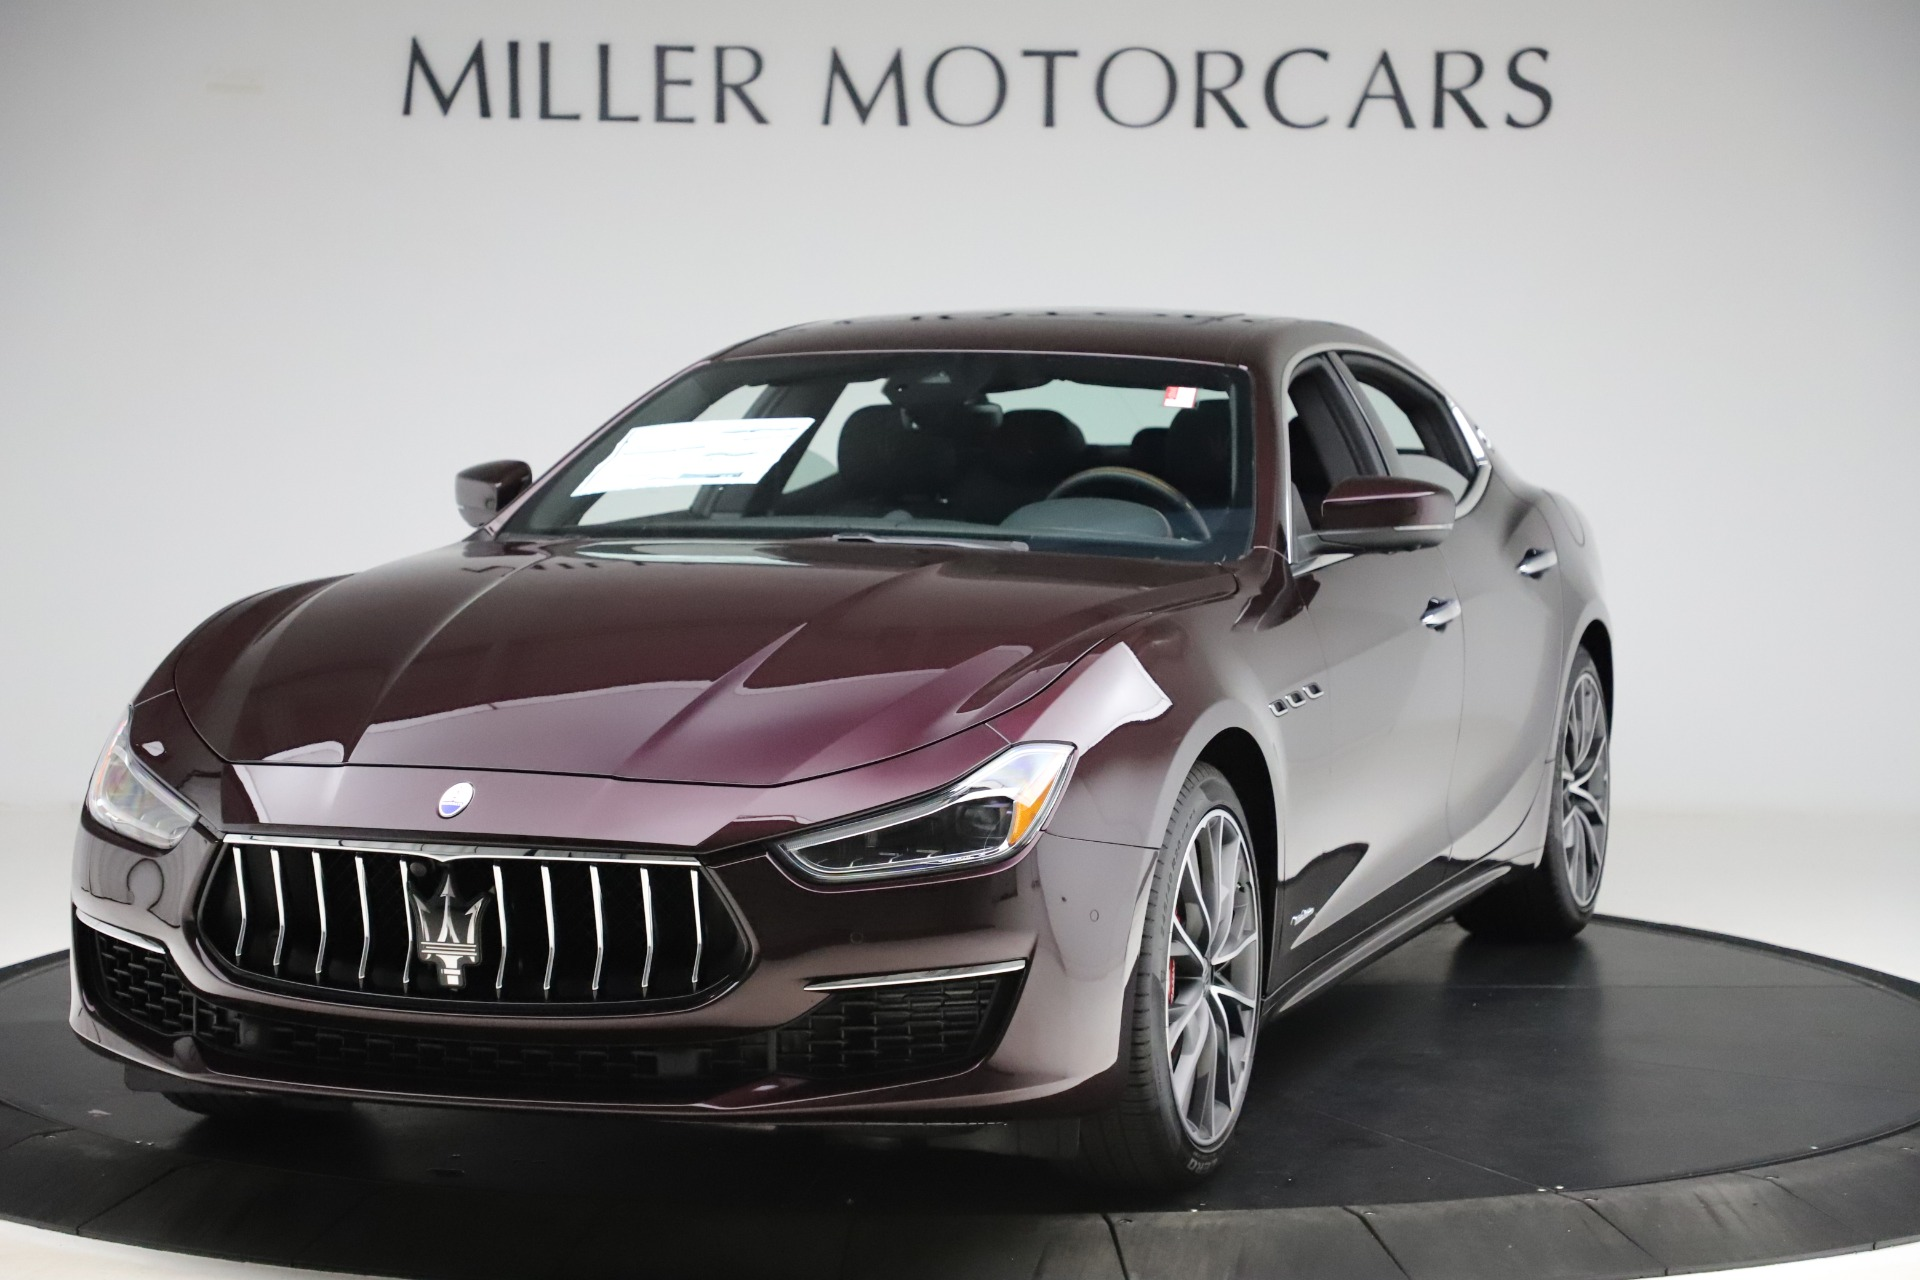 New 2020 Maserati Ghibli S Q4 GranLusso for sale $94,335 at Maserati of Westport in Westport CT 06880 1